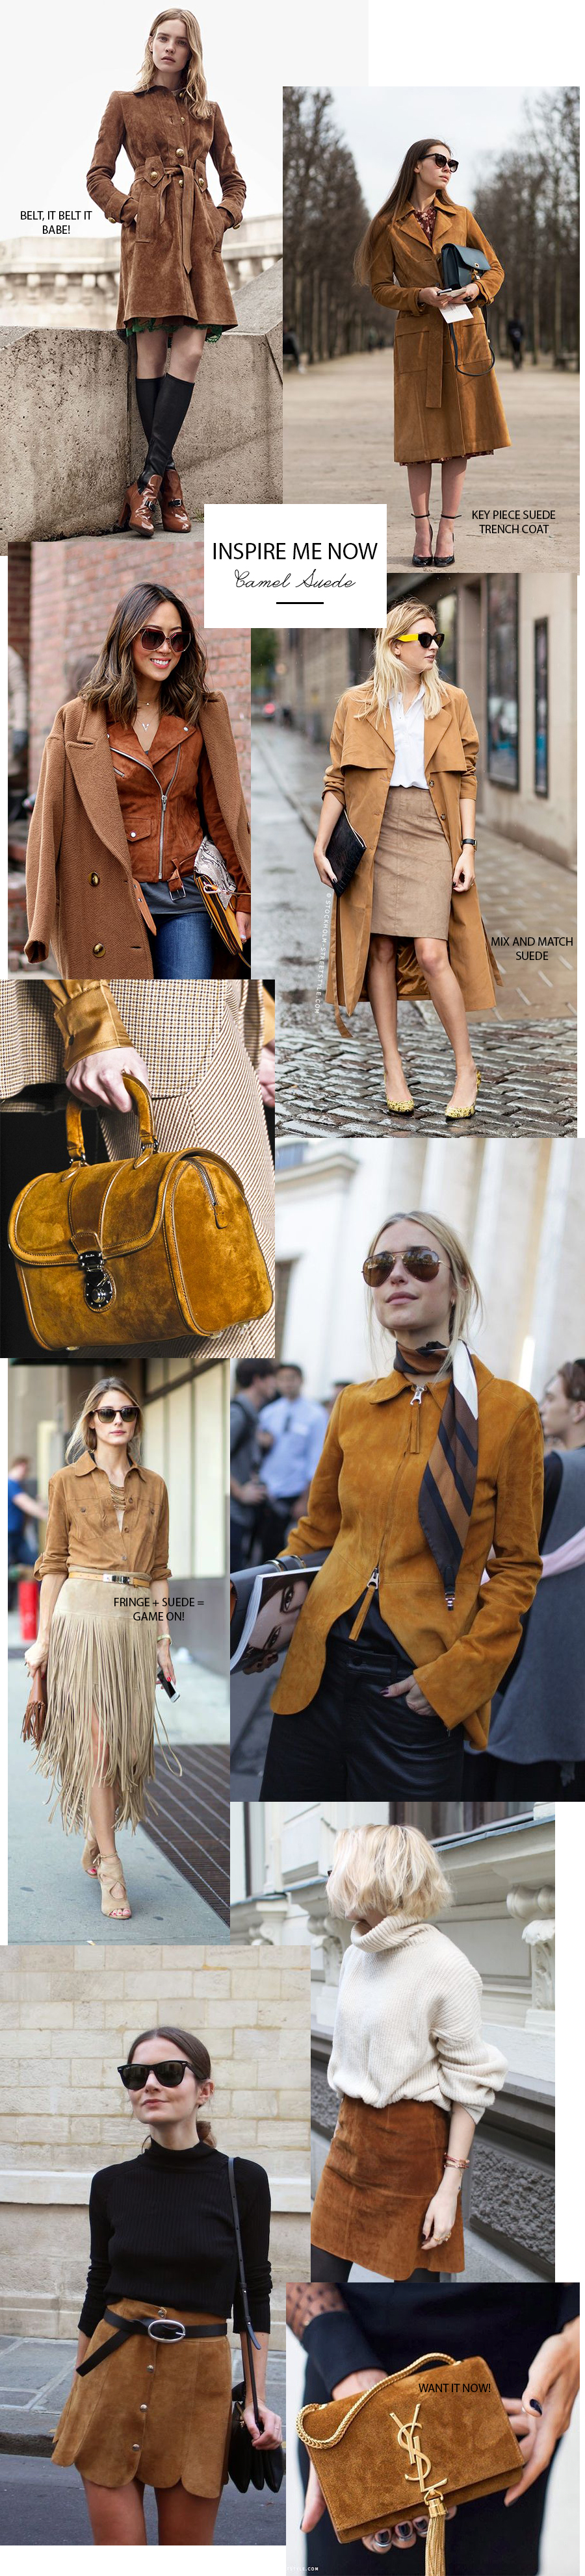 suede, how to wear suede, camel suede, trend camel suede